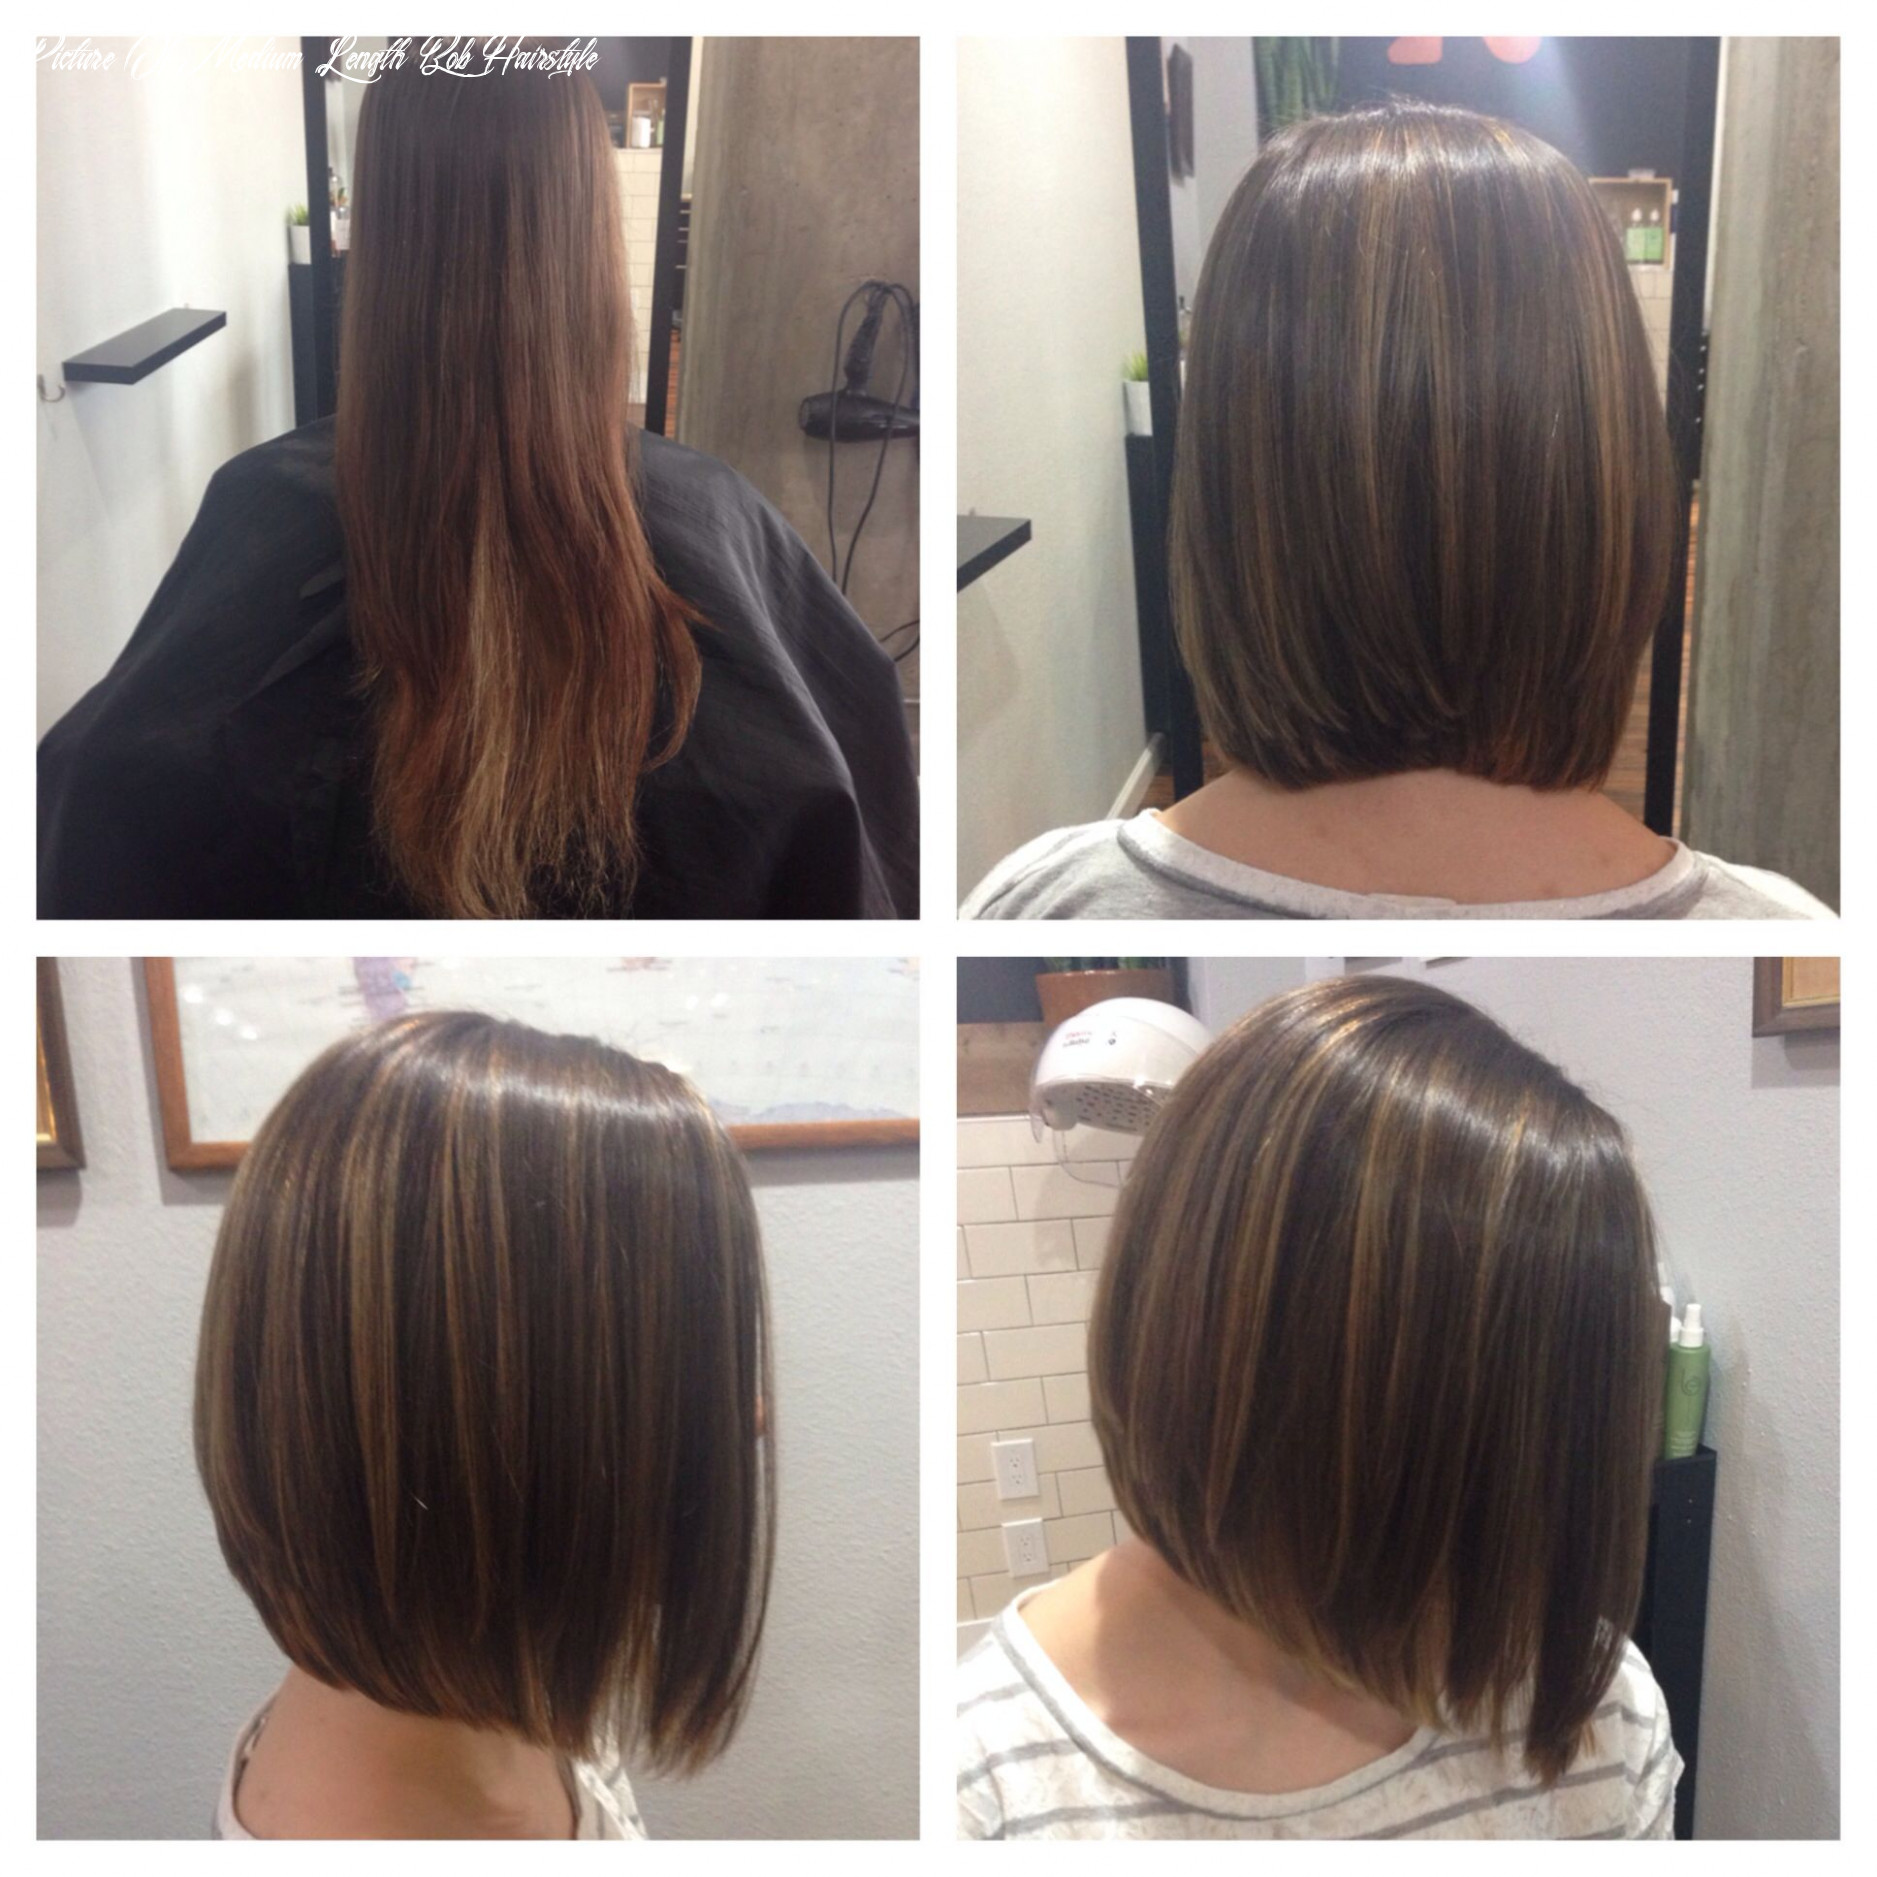 Pin on hairs picture of medium length bob hairstyle